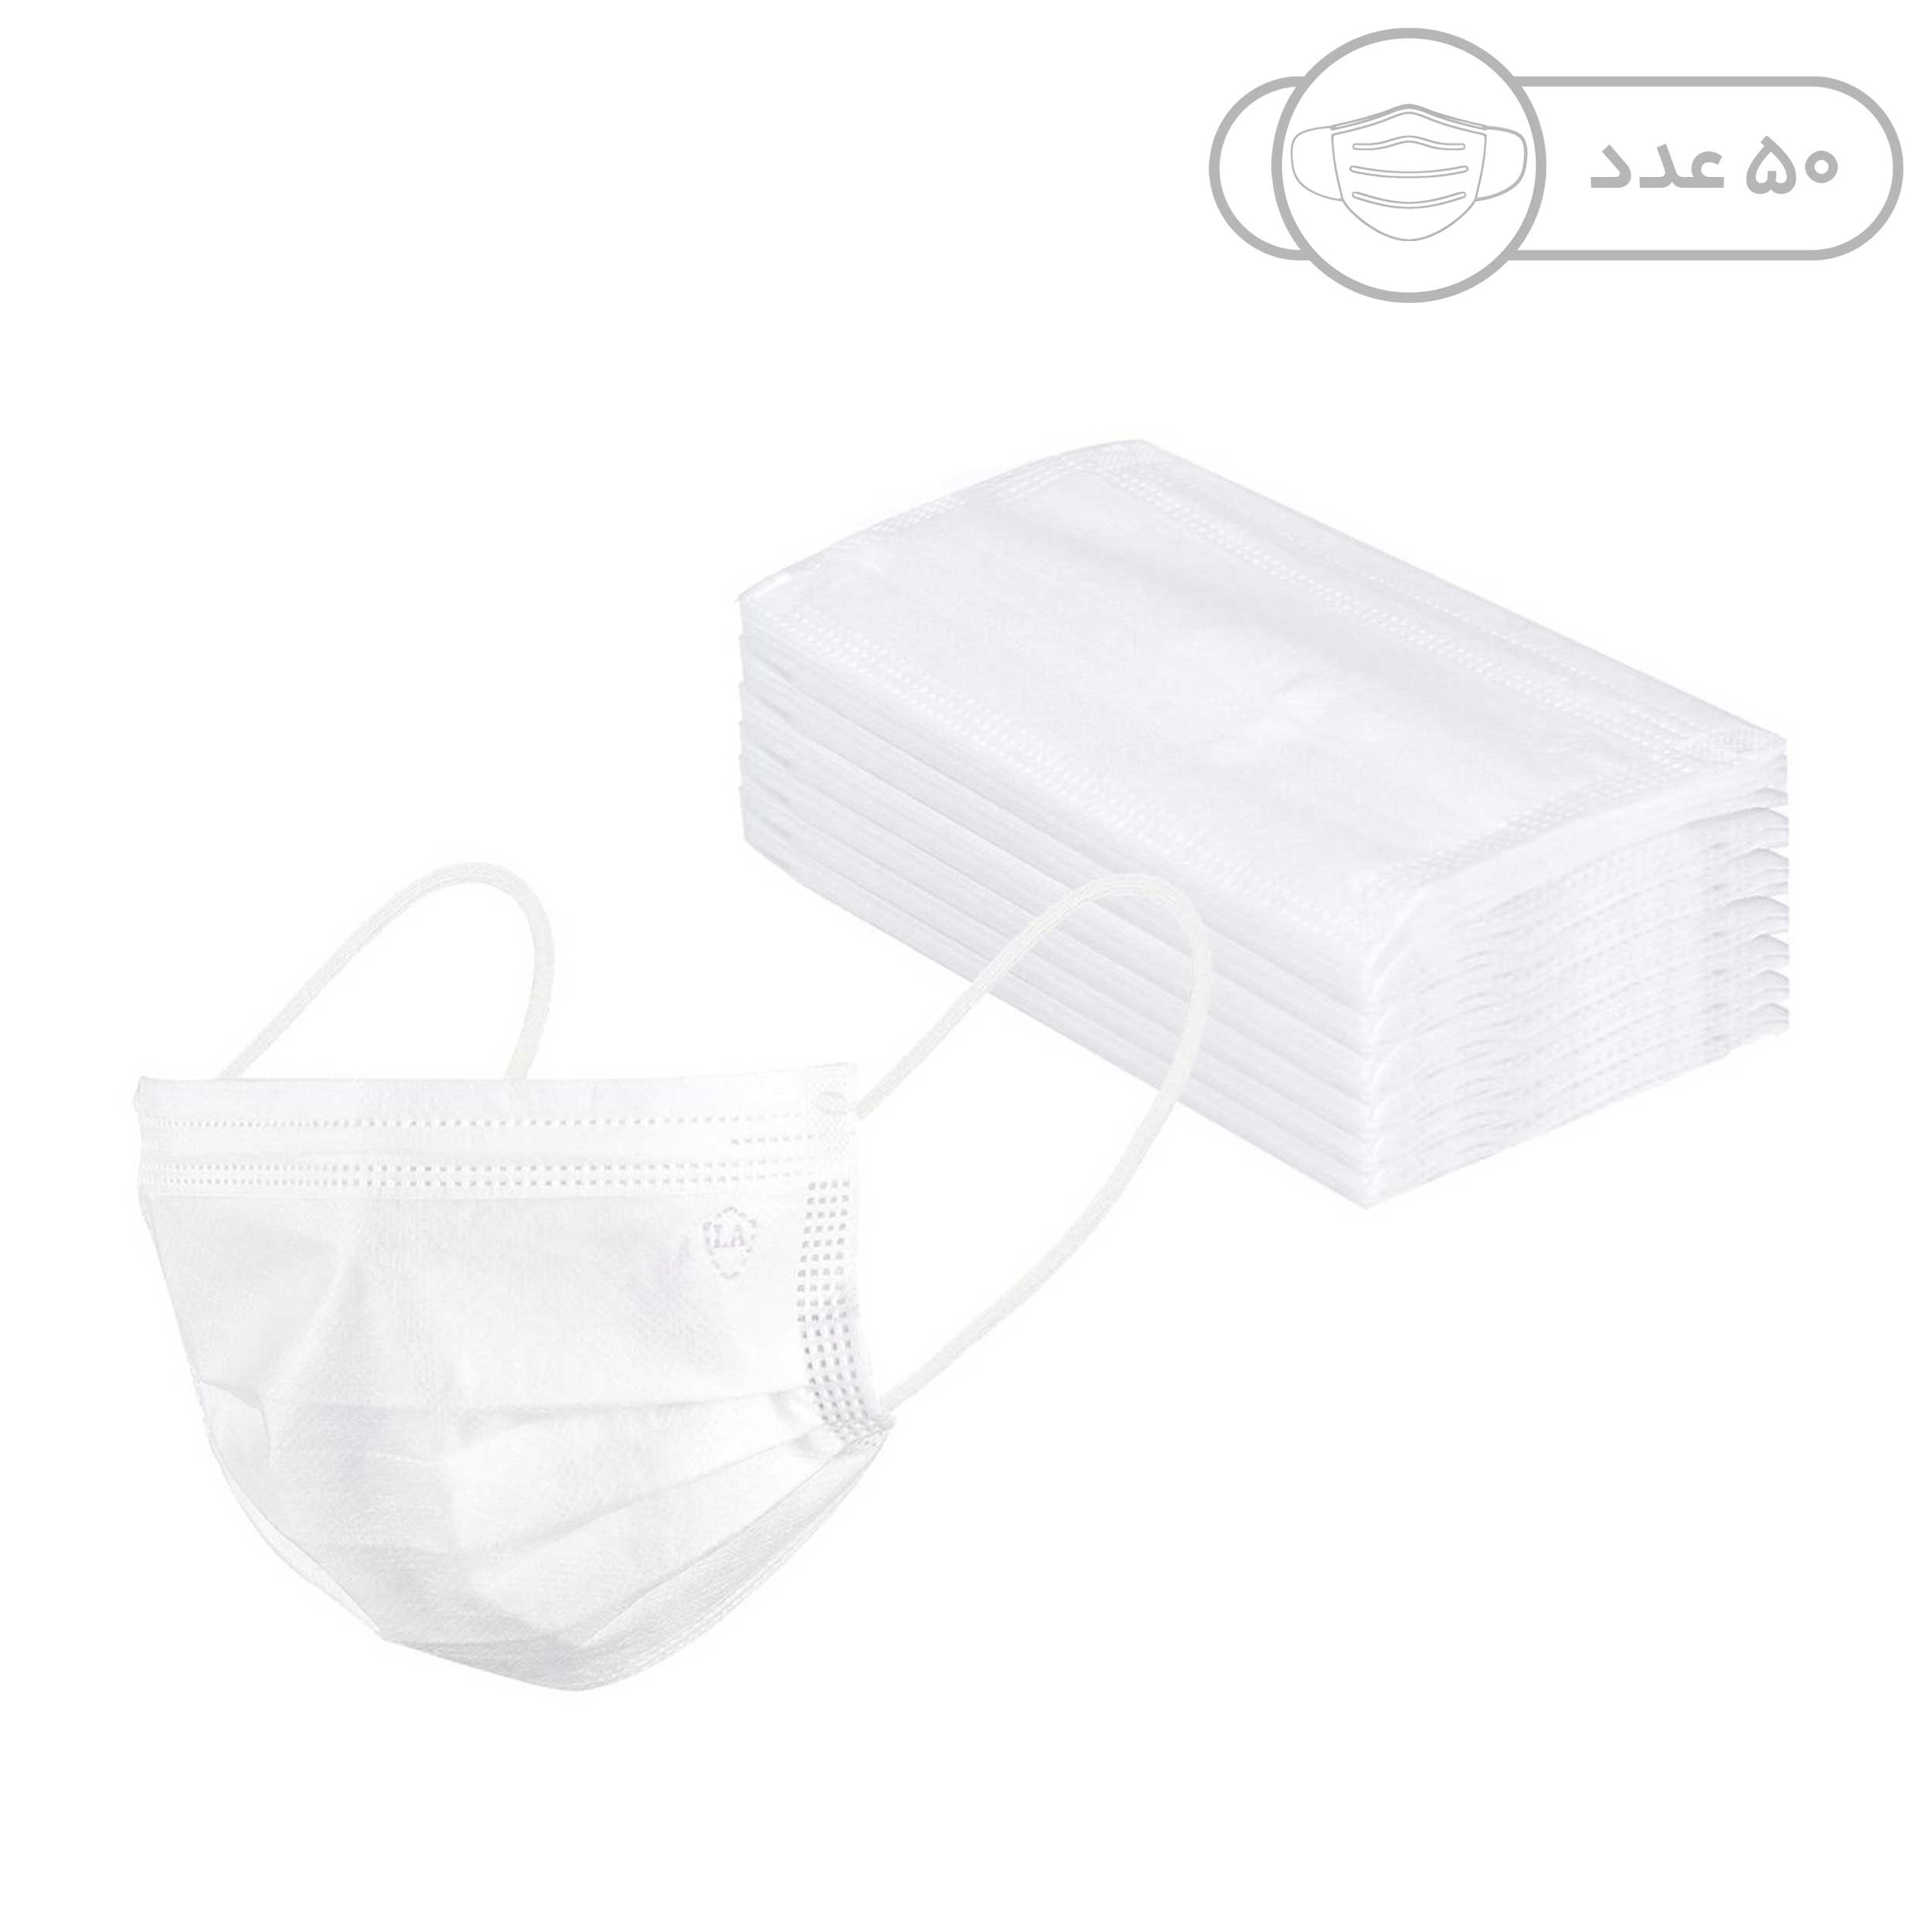 50 pcs high quality Disposable protective breathable face Mask 3 Ply Non woven safe Anti-dust and viruses filter, model TIANI